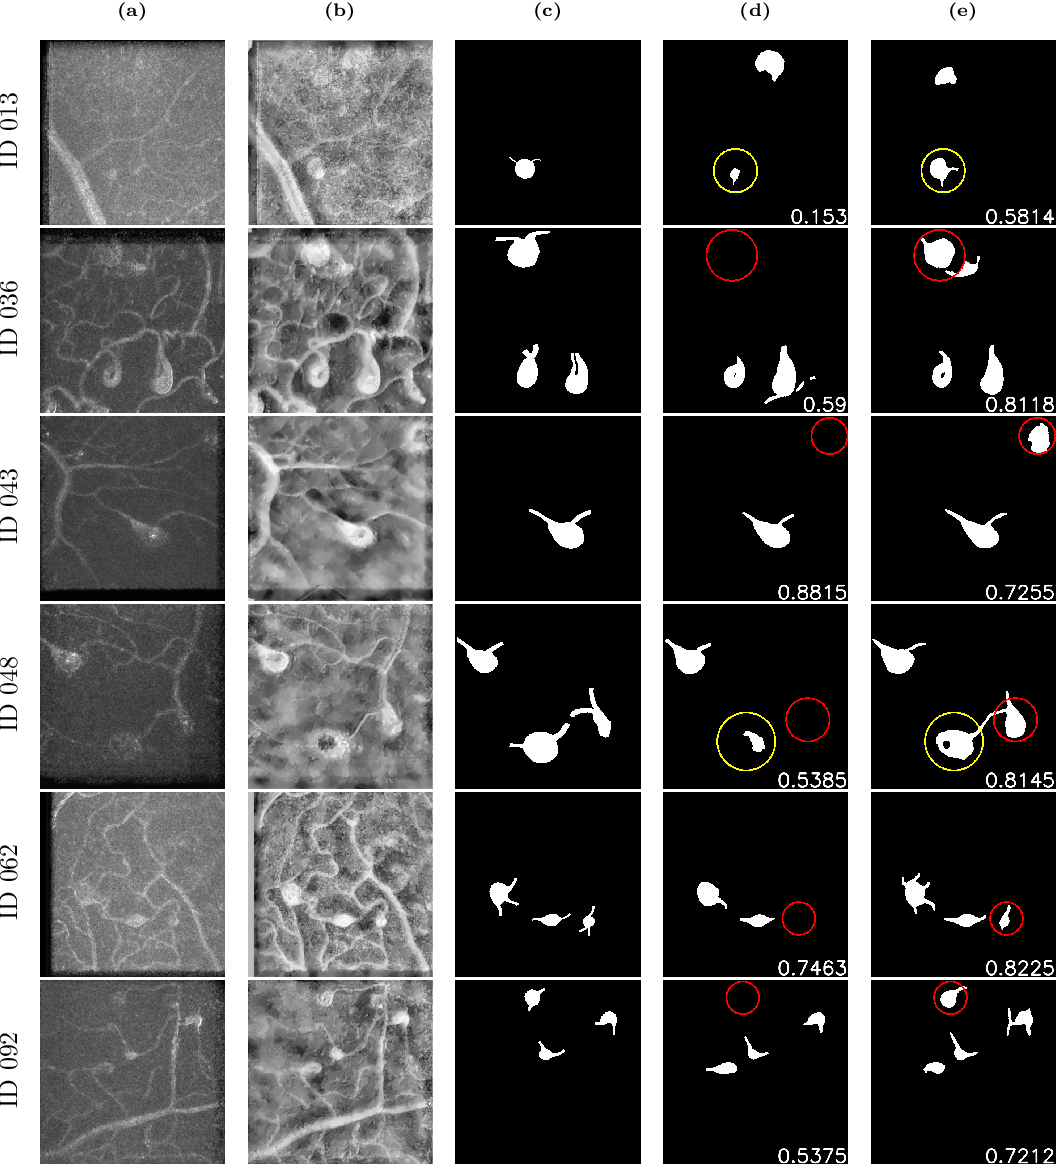 Figure 4 for AOSLO-net: A deep learning-based method for automatic segmentation of retinal microaneurysms from adaptive optics scanning laser ophthalmoscope images